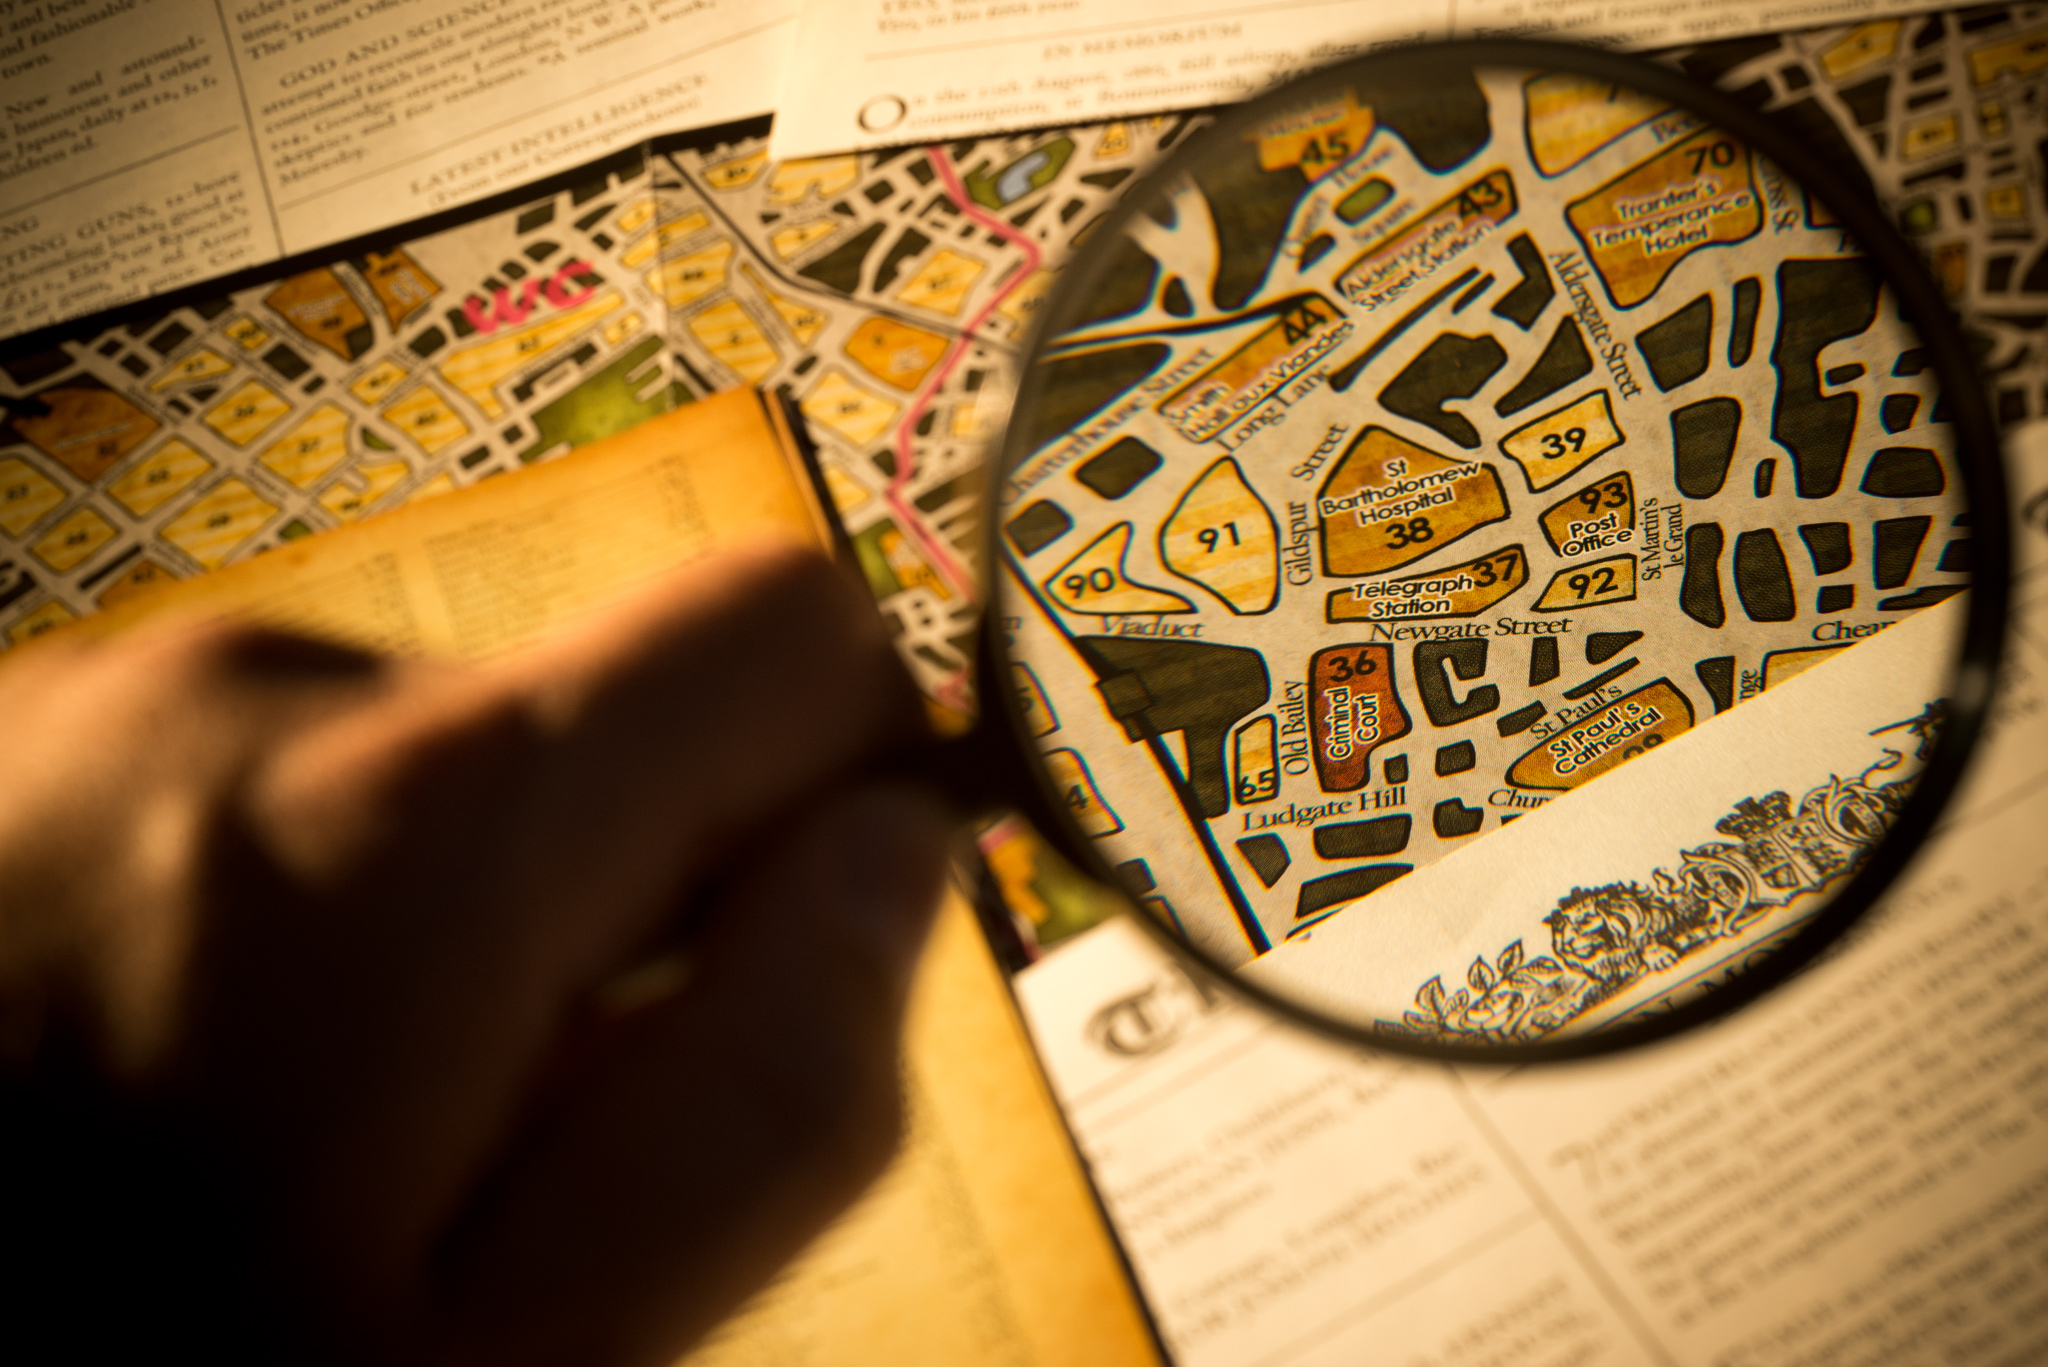 Getting a closer look with a magnifying glass in Sherlock Holmes Consulting Detective tabletop game